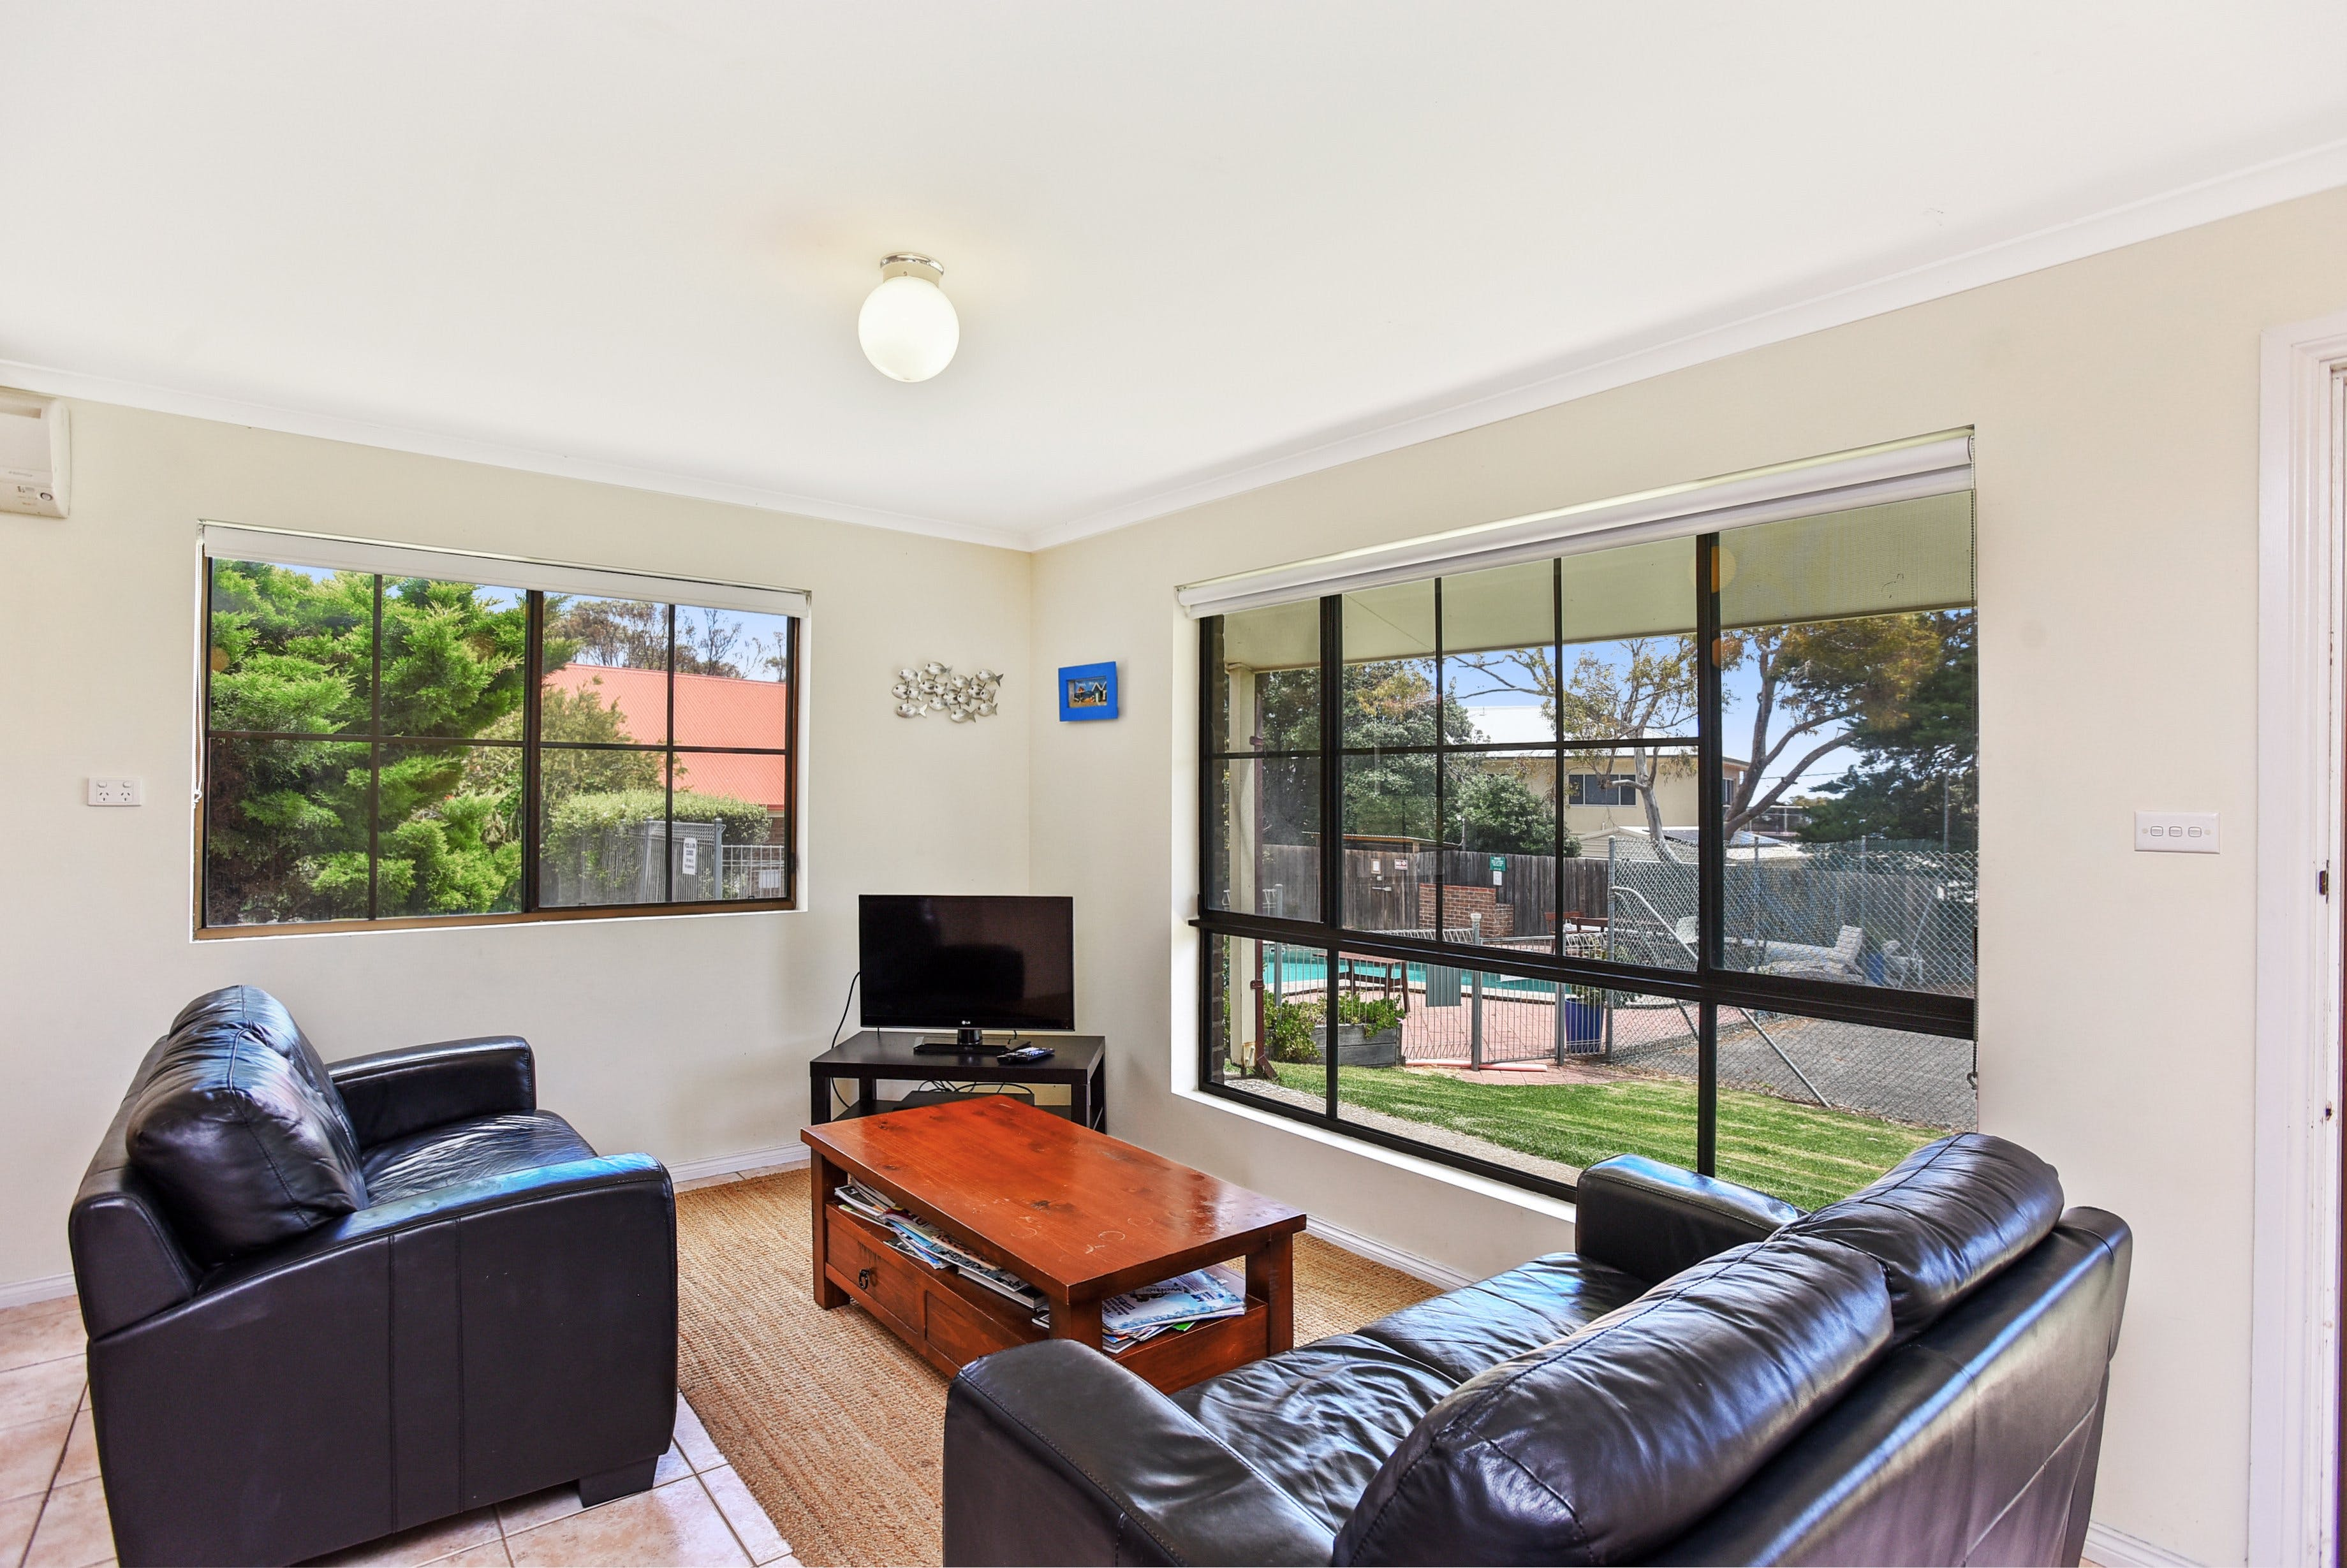 Unit 3 5-/ Surf Avenue Carrickalinga - Accommodation in Surfers Paradise